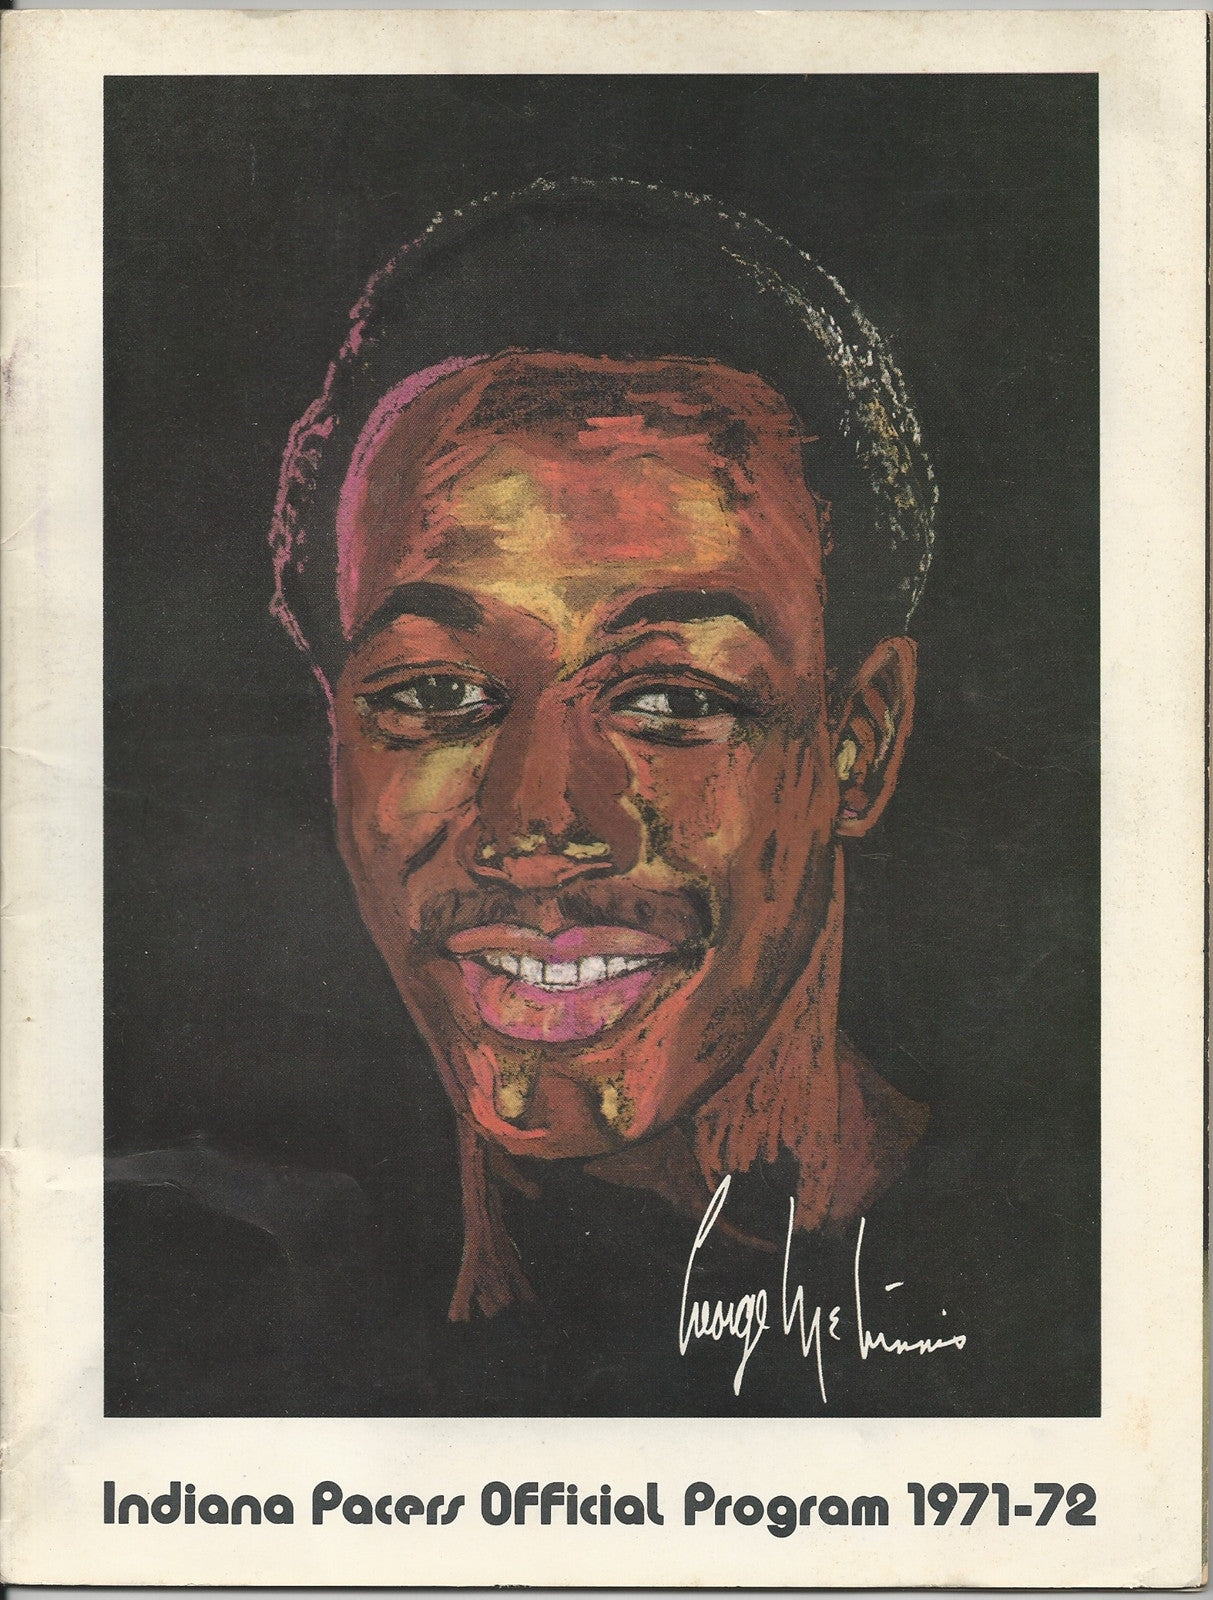 1971 Indiana Pacers vs Utah Stars ABA Basketball Program, McGinnis Cover - Vintage Indy Sports